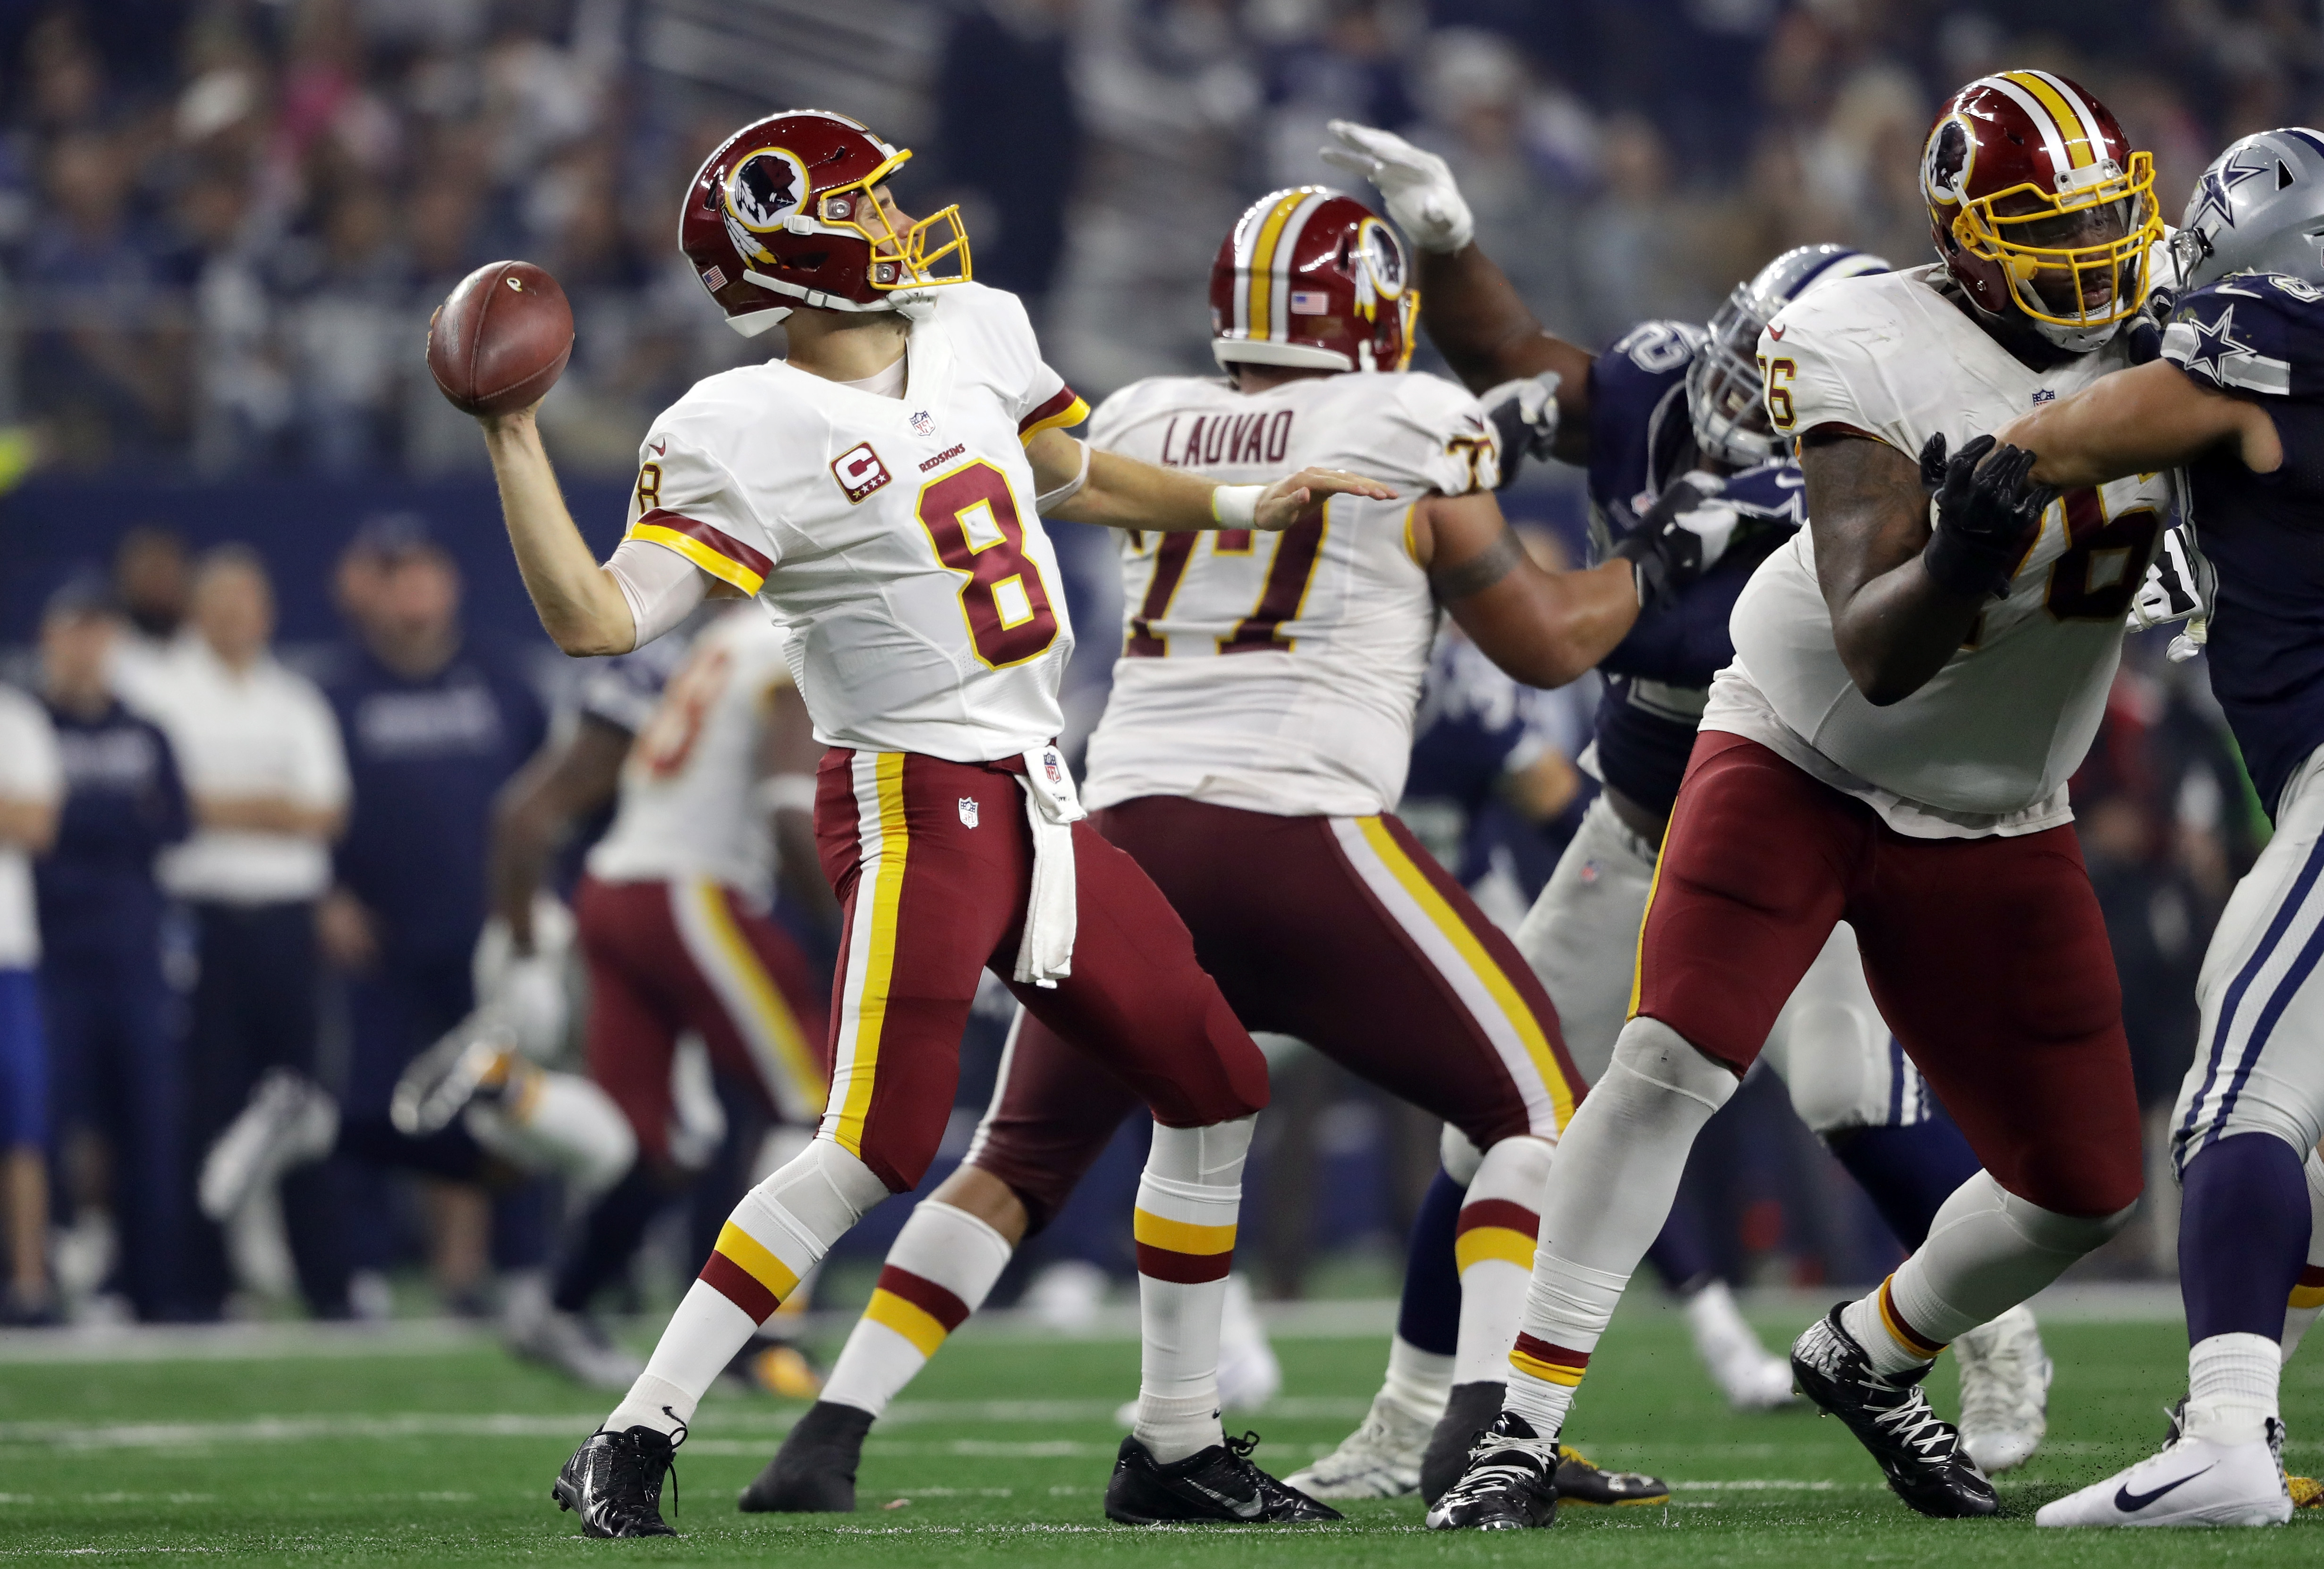 Redskins quarterback Kirk Cousins would be a coveted commodity on the free-agent market. (Getty Images)